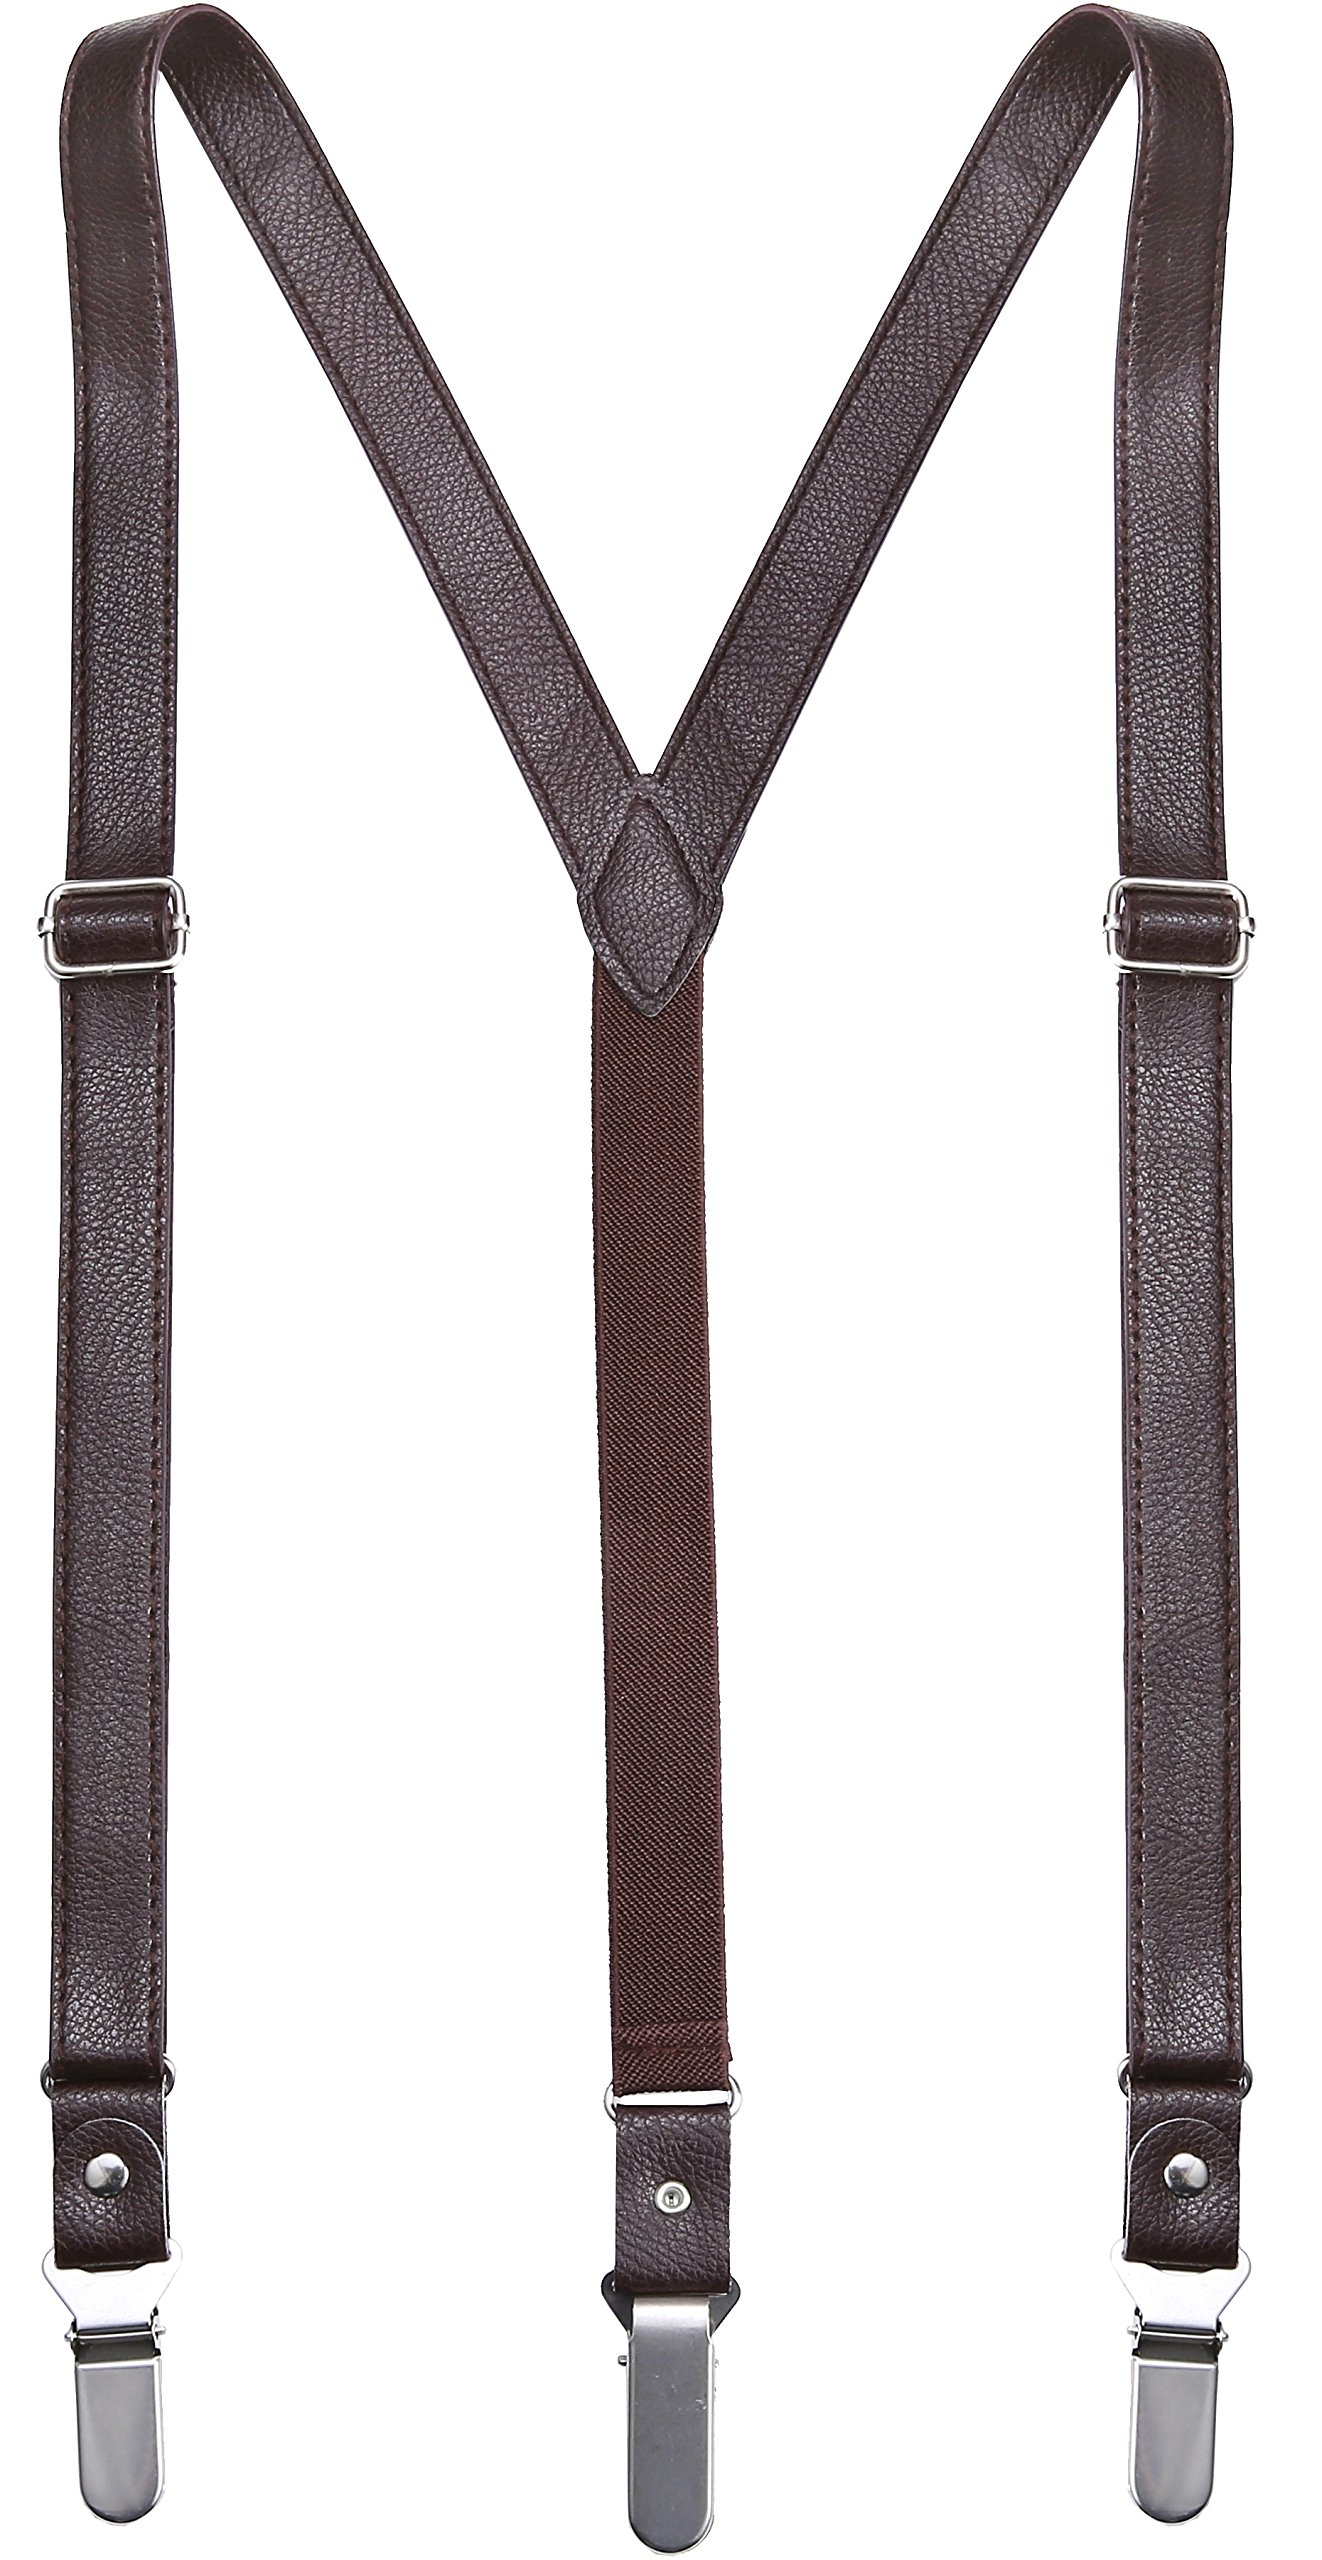 Marino Men's Leather Y-Back Adjustable Suspender with EazyGrip Clip - Soft Brown Leather - Up tp 54'' Long by Marino Avenue